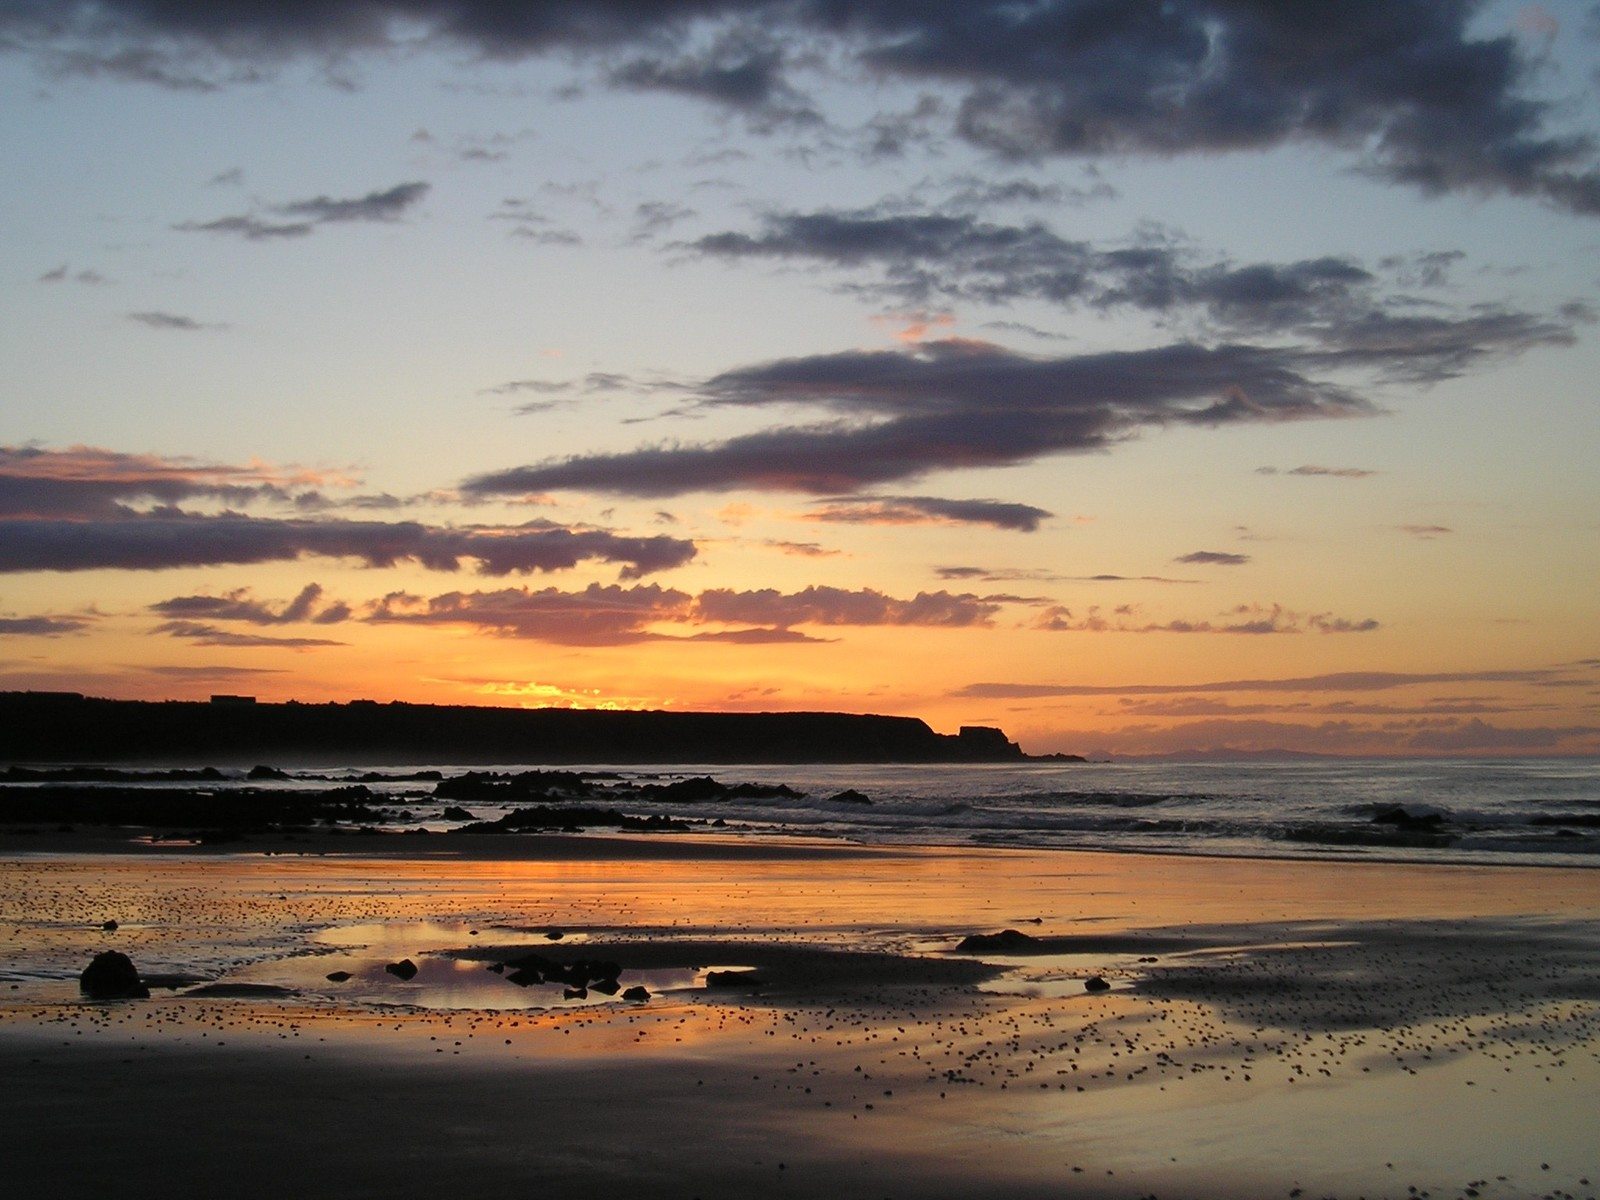 Sunset at Cullen on the Moray Firth coast